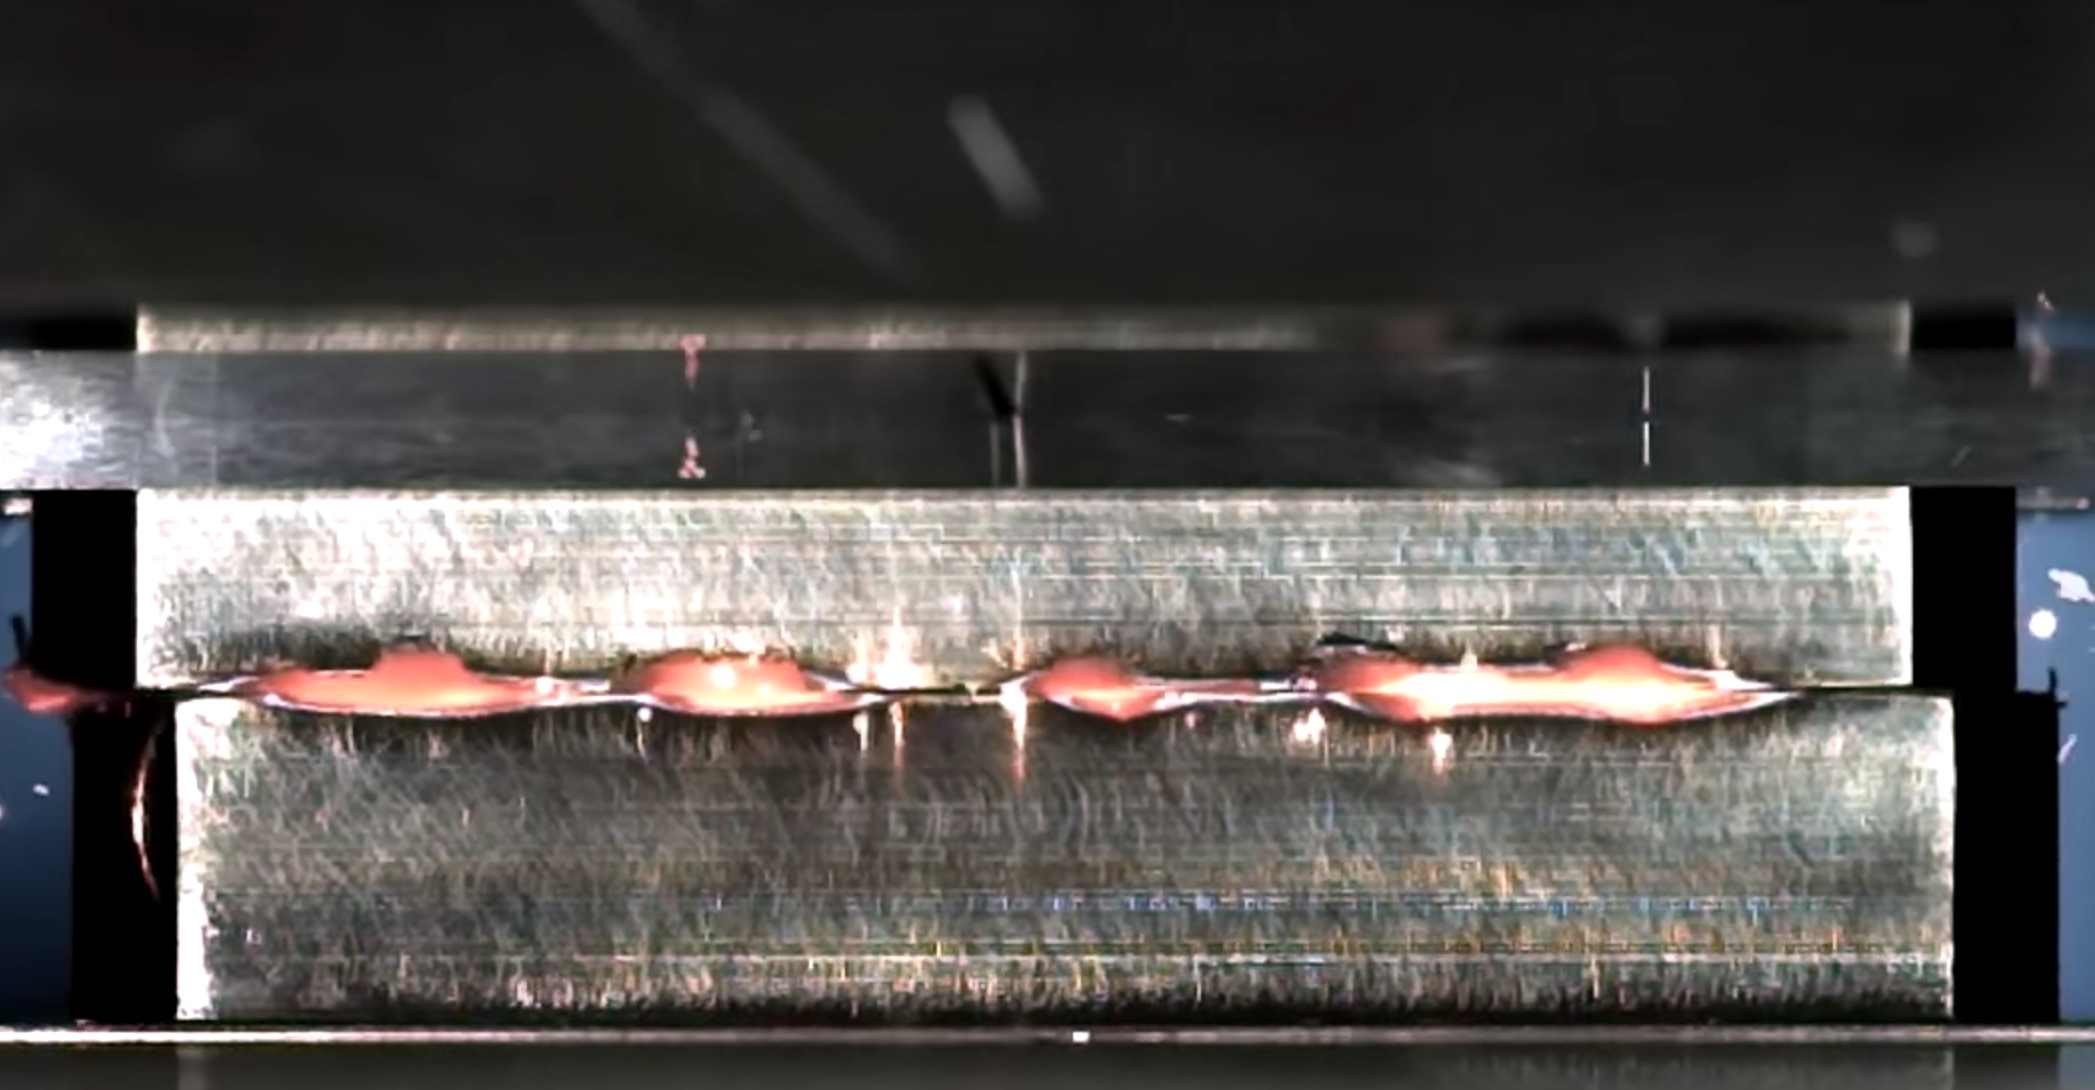 Watch the Brute Force of Linear Friction Welding in Mind-Numbing 32x Slow Motion